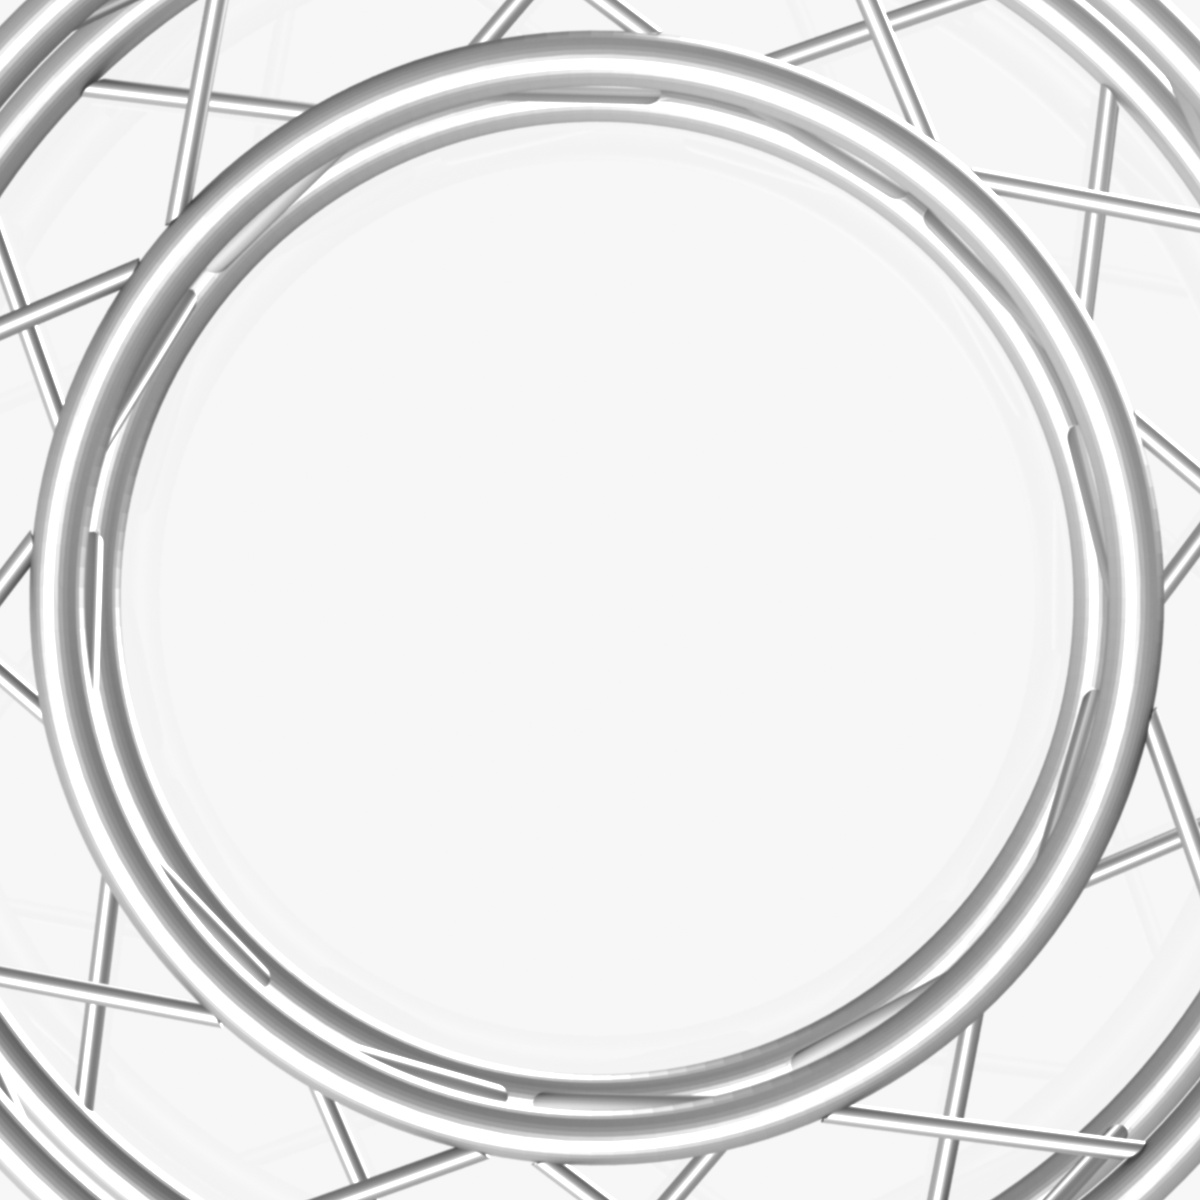 circle square truss full diameter 150cm 3d model 3ds max fbx c4d dae  obj 252297